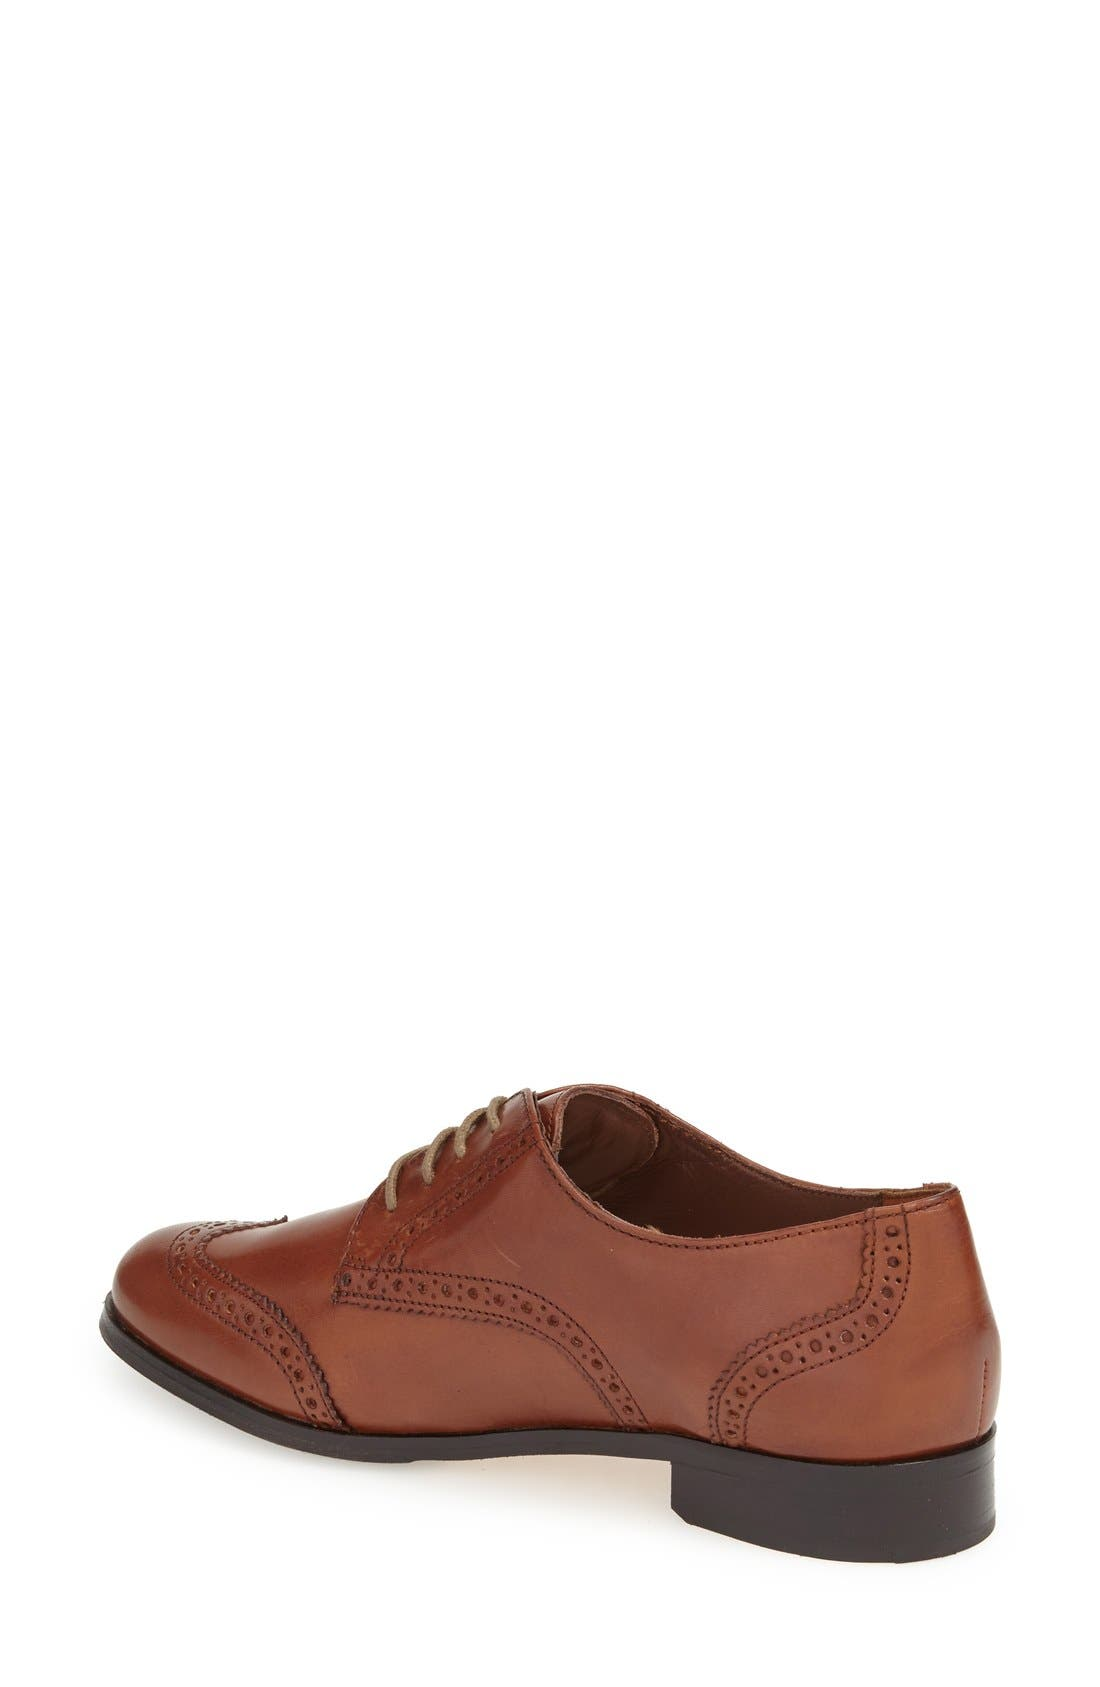 Alternate Image 2  - Cole Haan Grand.OS Oxford (Women)